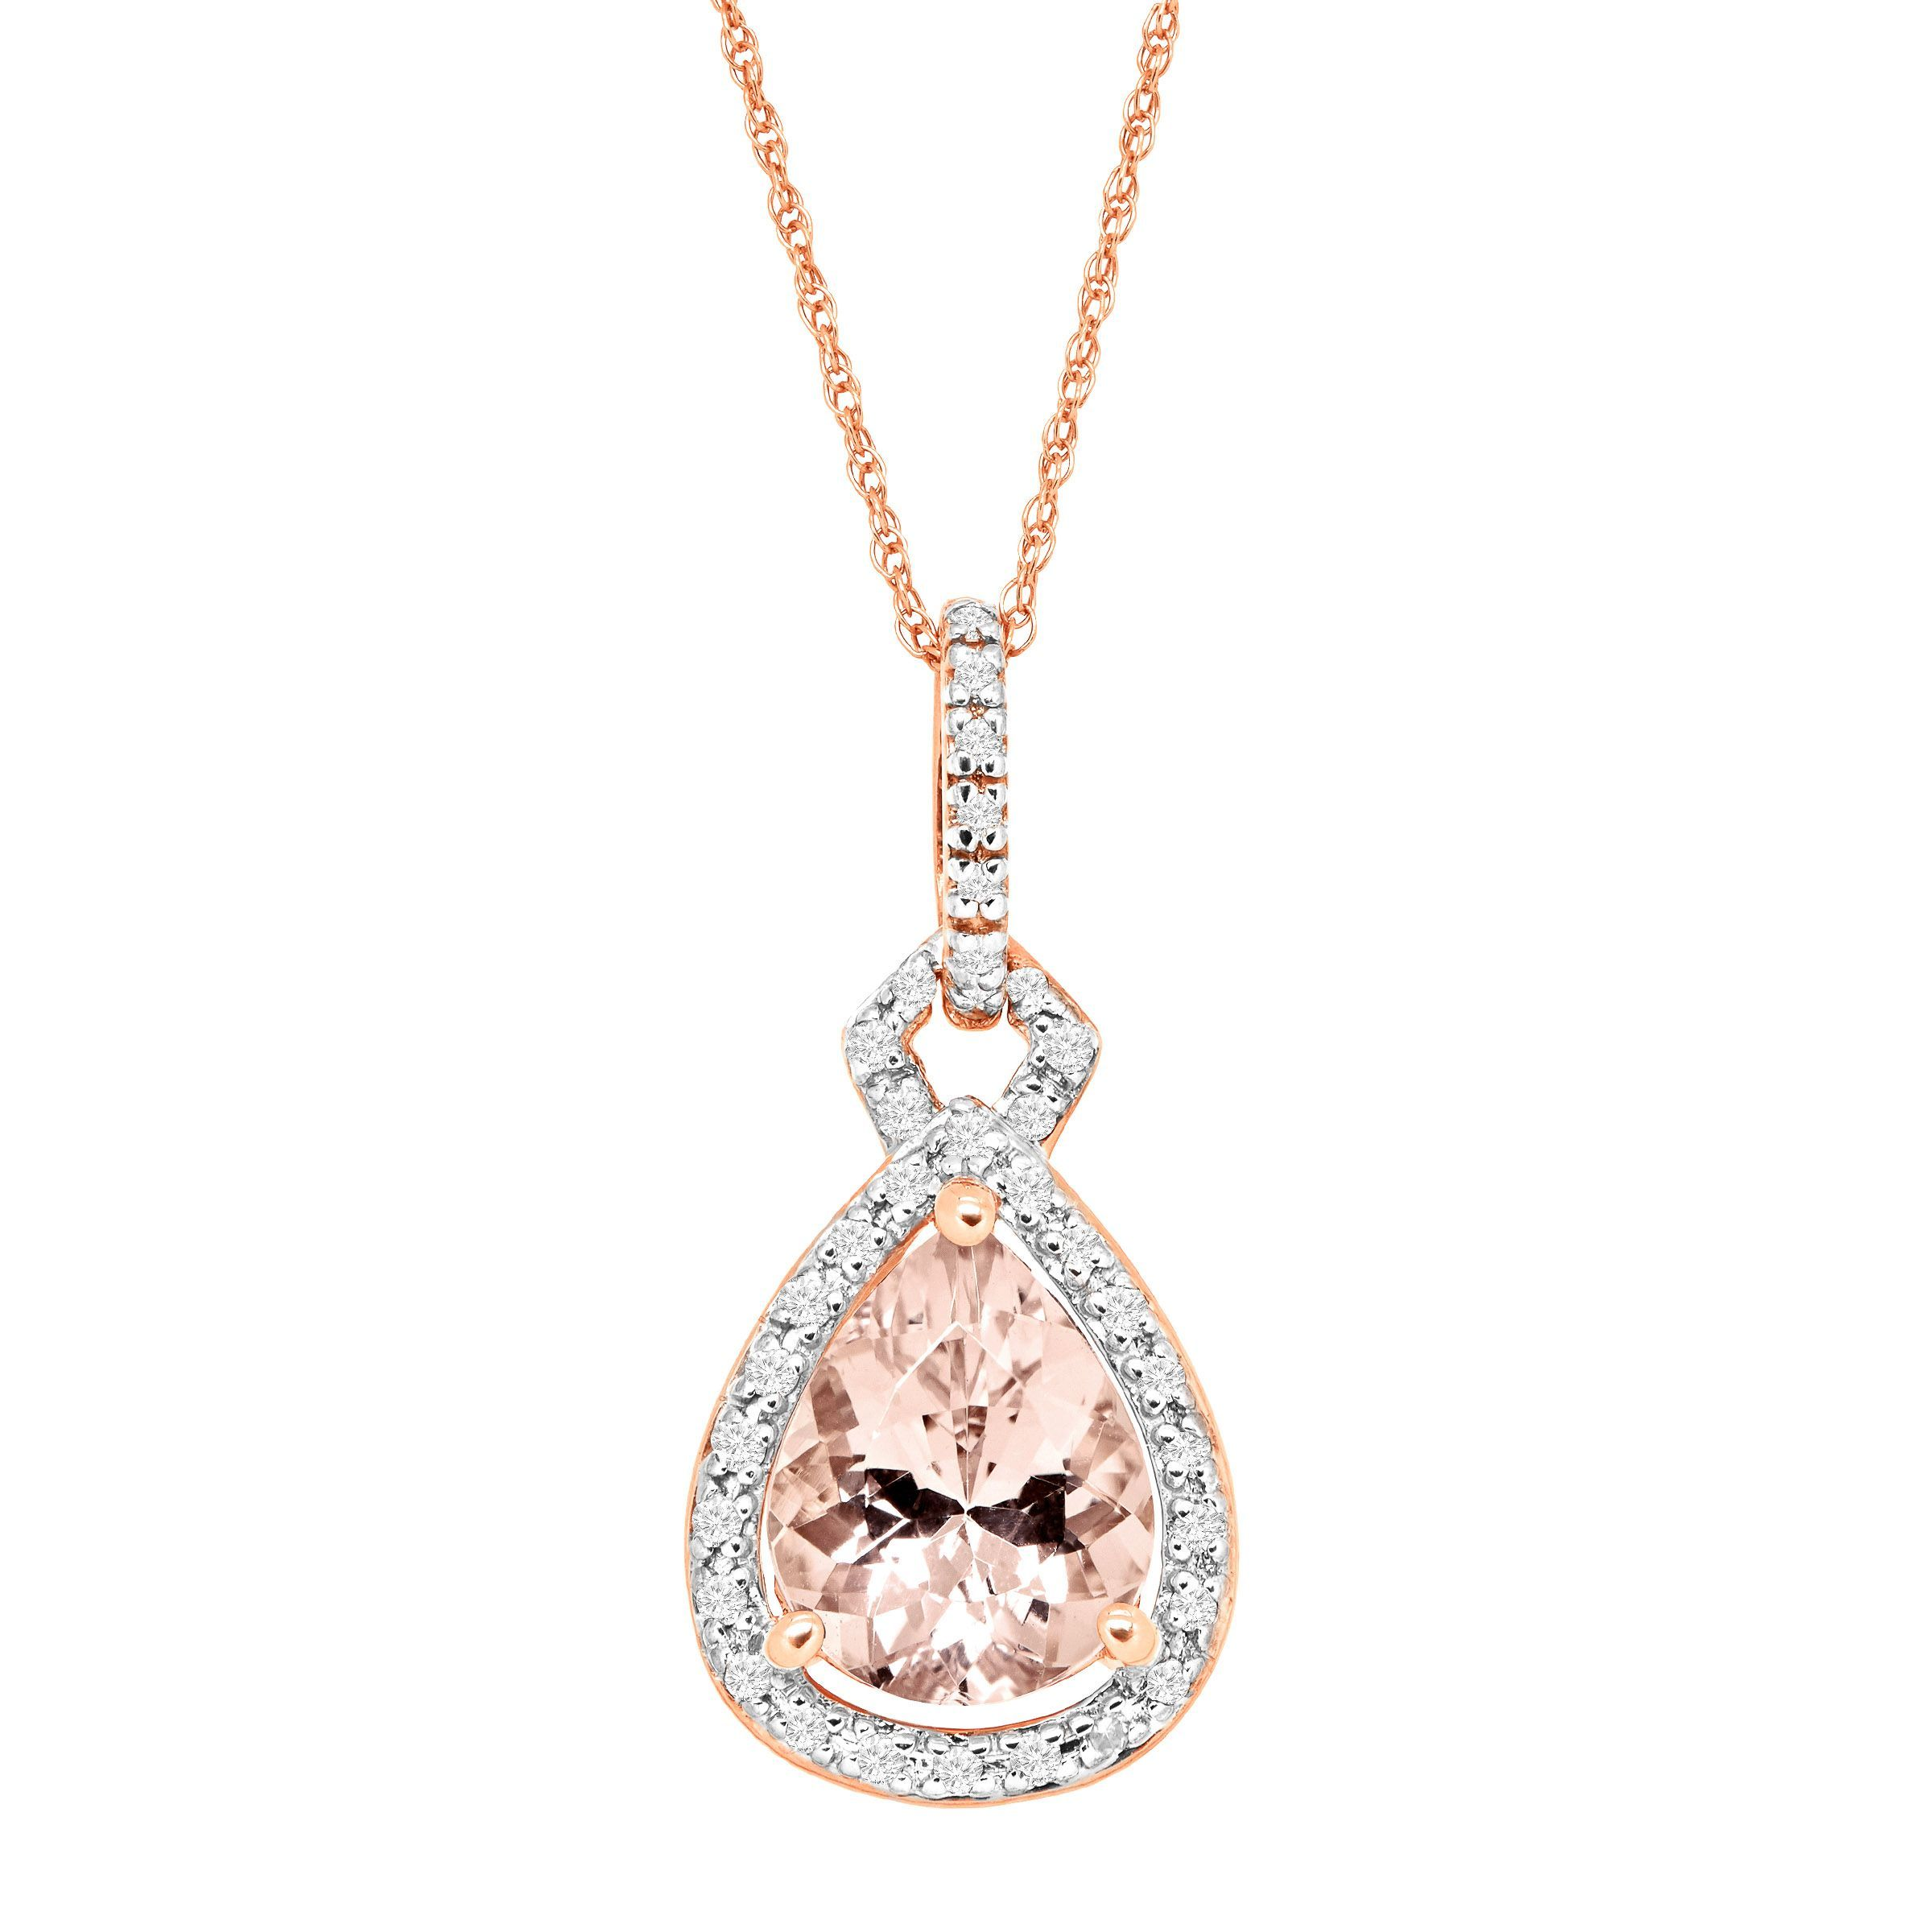 operandi pendant beirut loading large morganite selim mouzannar with by pink moda